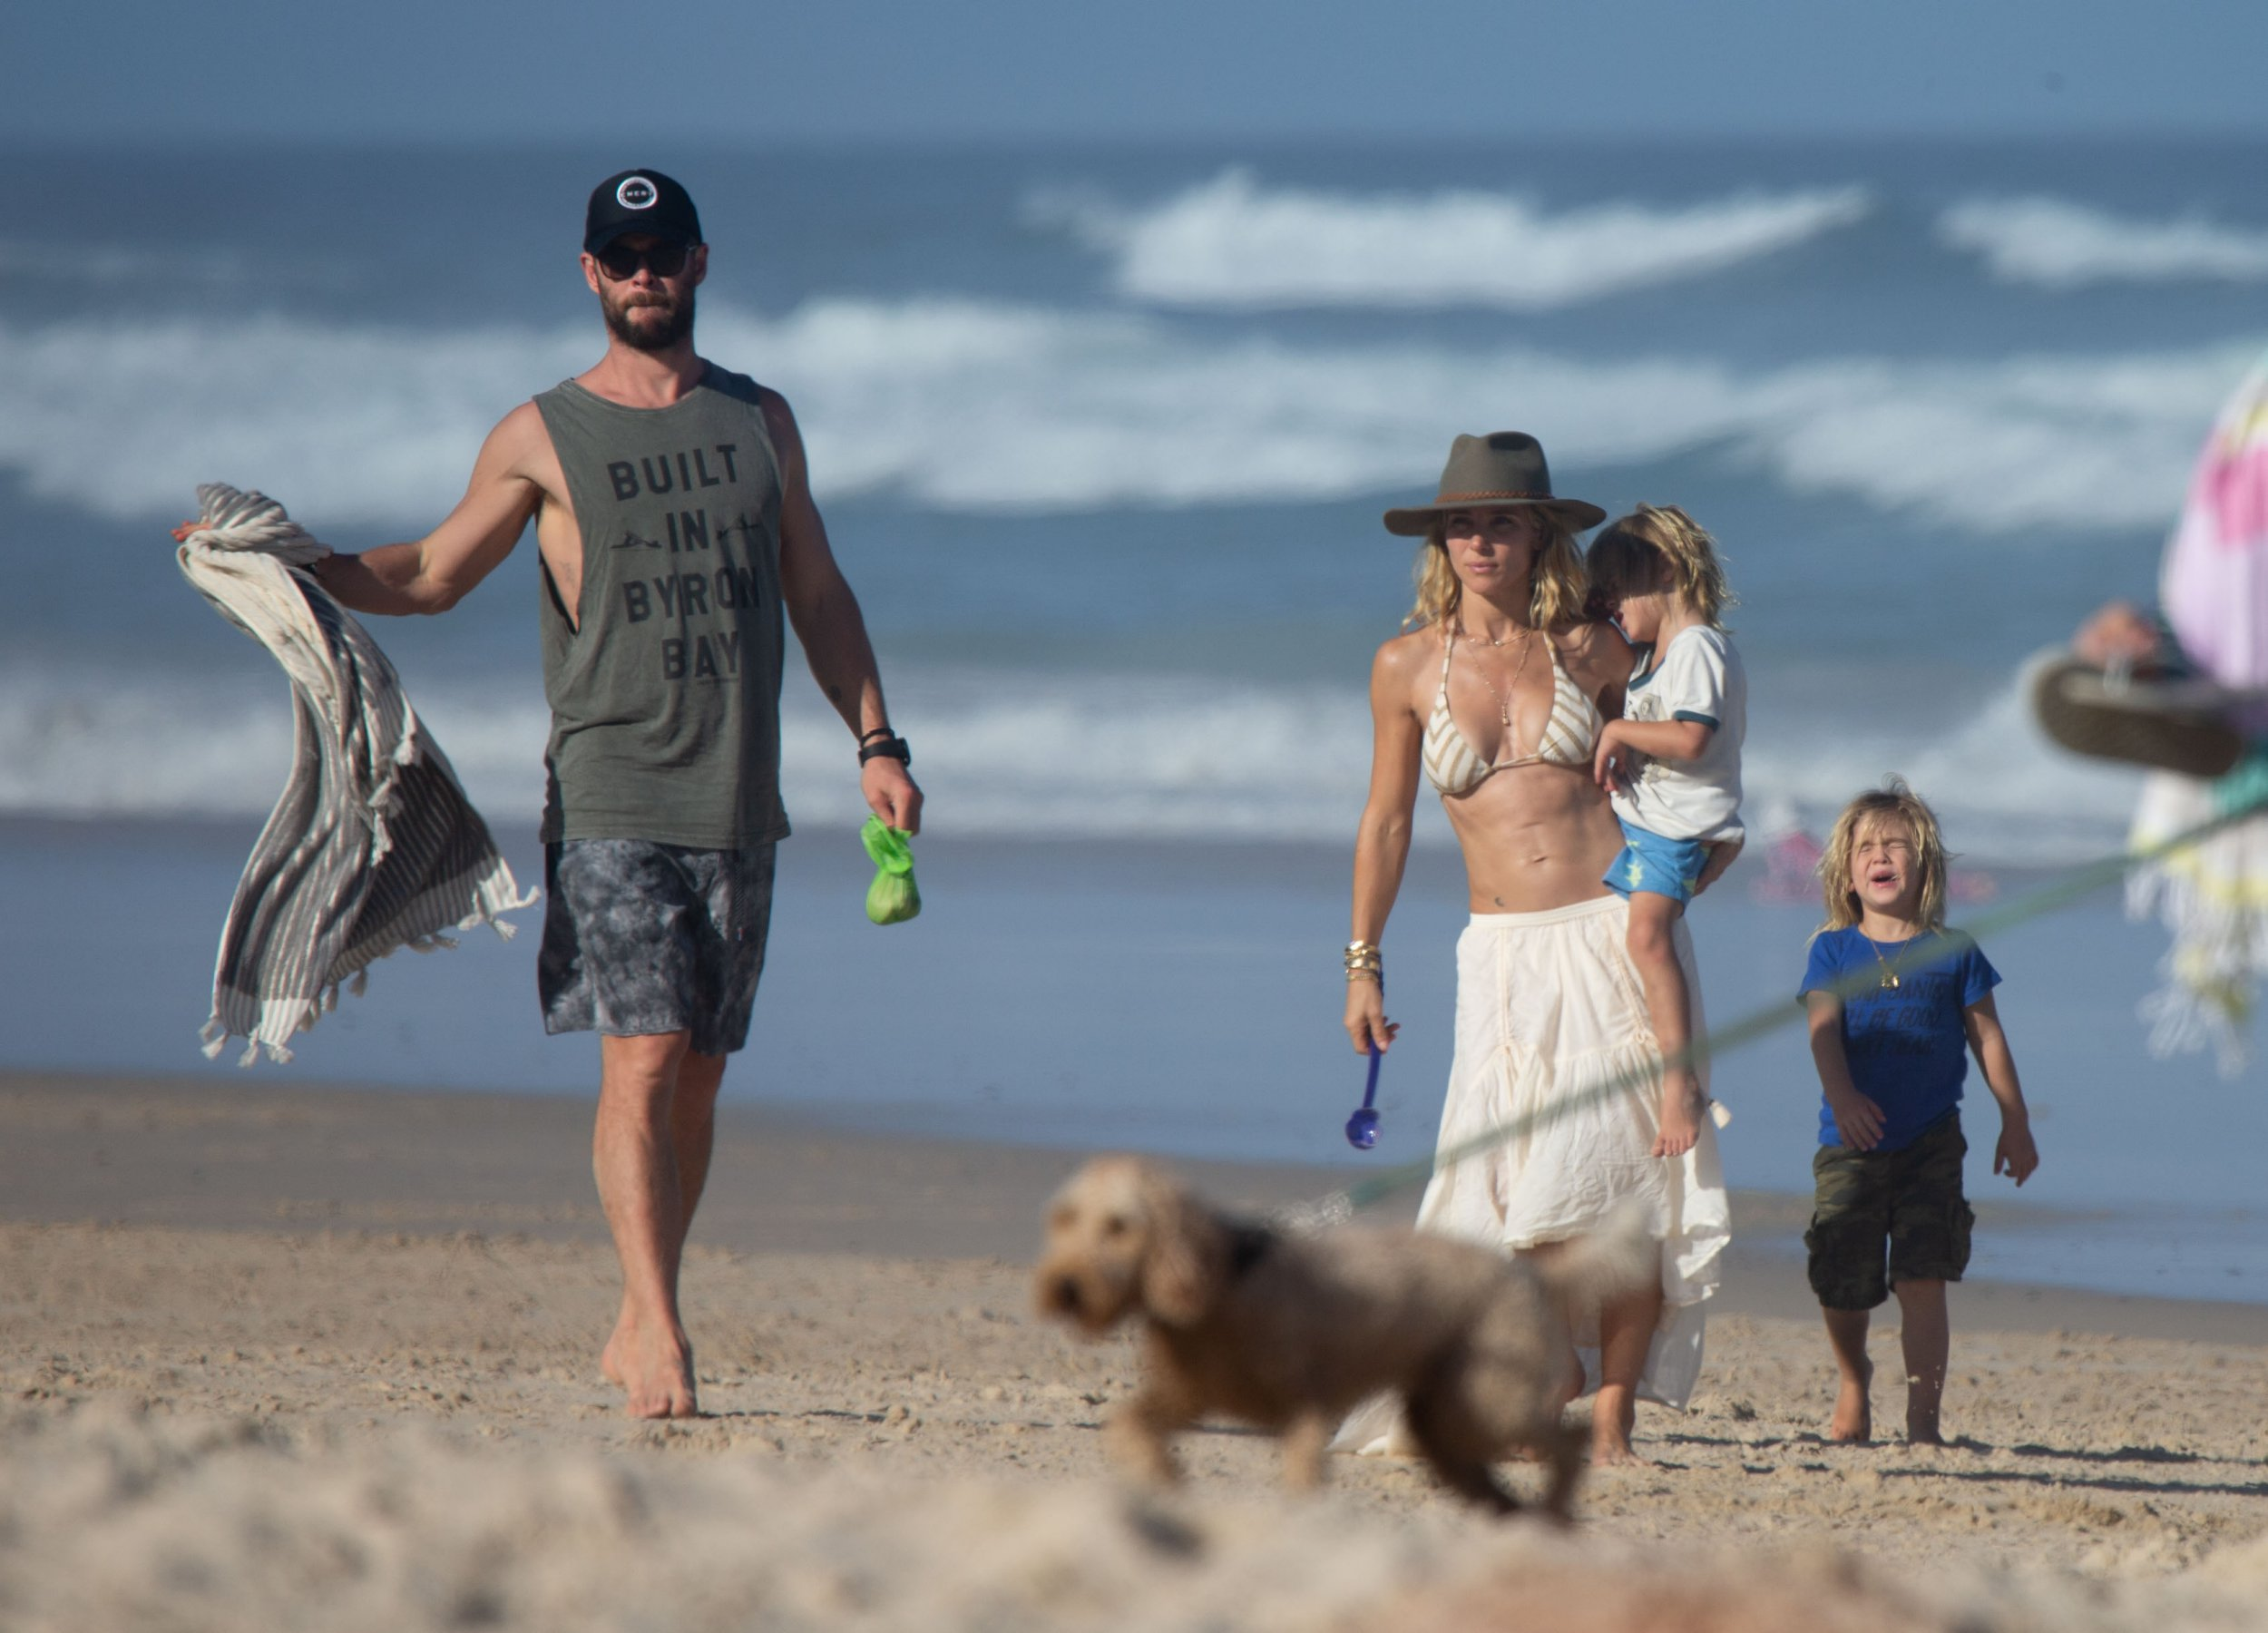 EXCLUSIVE: * Online Set Fee 250 GBP * * UK Print Min Fee 250 GBP Per Pic - Double Fees Page 1 * *NO MAIL ONLINE* Chris Hemsworth and Elsa Pataky head straight to the beach with their children, after arriving back in Australia following Liam Hemsworth and Miley Cyrus' wedding in USA. Pictured: Chris Hemsworth,Elsa Pataky Ref: SPL5053645 080119 EXCLUSIVE Picture by: Media-Mode / SplashNews.com * Online Set Fee 250 GBP * * UK Print Min Fee 250 GBP Per Pic - Double Fees Page 1 * Splash News and Pictures Los Angeles: 310-821-2666 New York: 212-619-2666 London: 0207 644 7656 Milan: 02 4399 8577 photodesk@splashnews.com World Rights, No Australia Rights, No New Zealand Rights, No Spain Rights